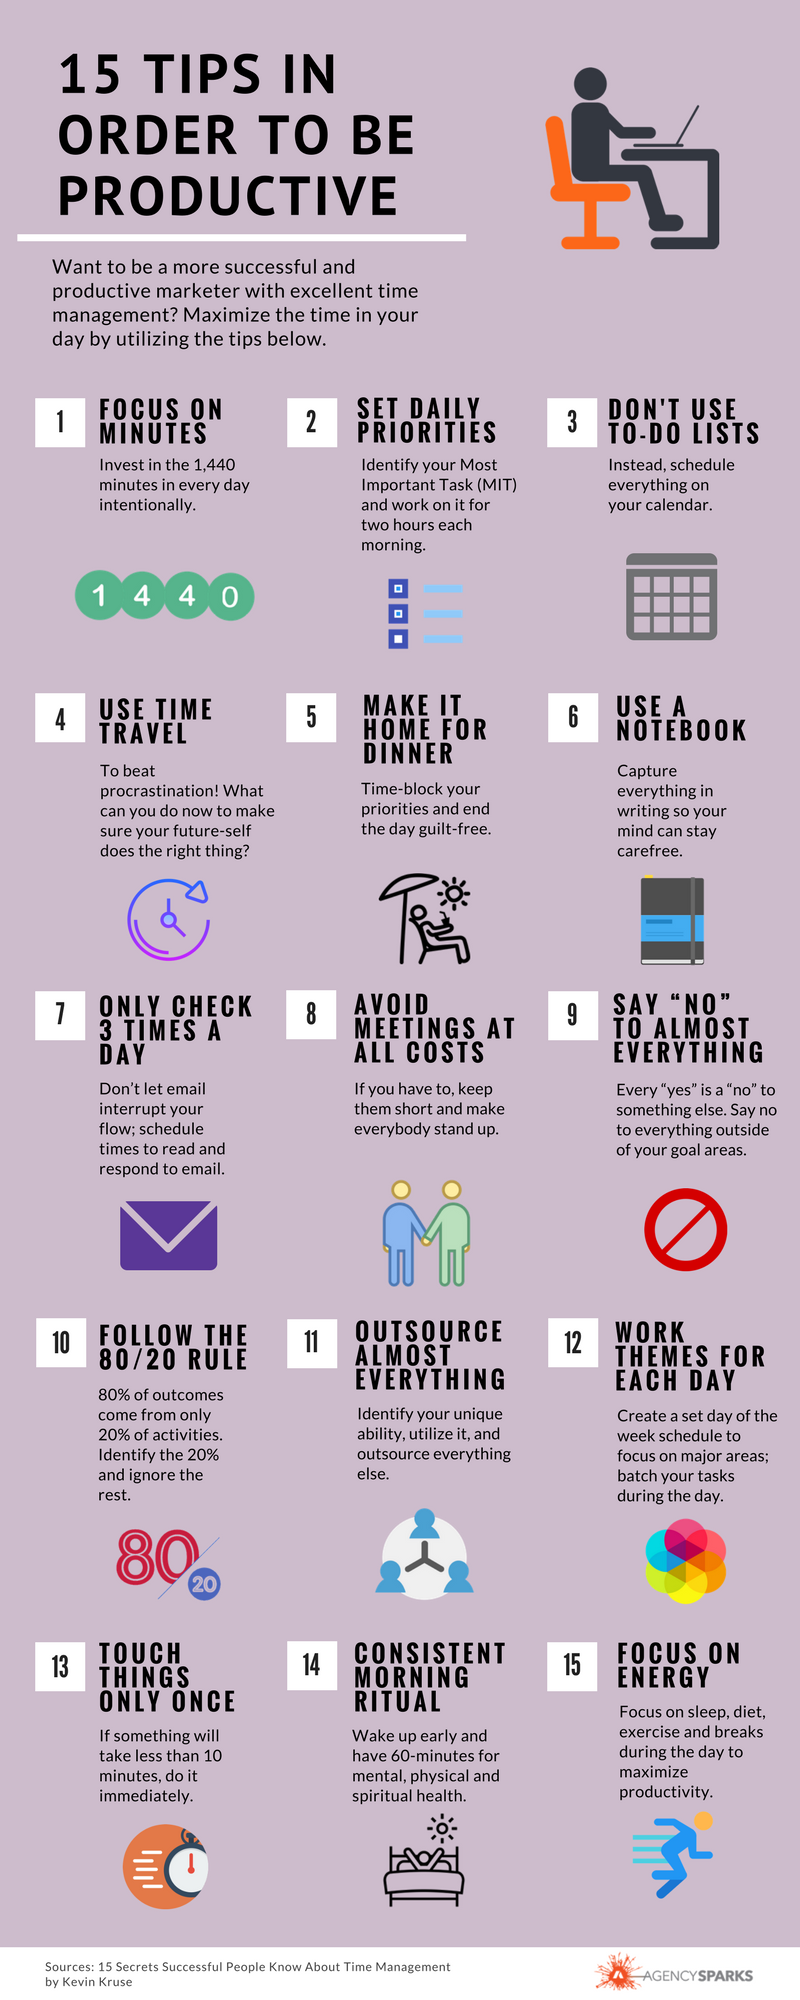 15 ways to be more productive in your life and your job by Kevin Kruse.